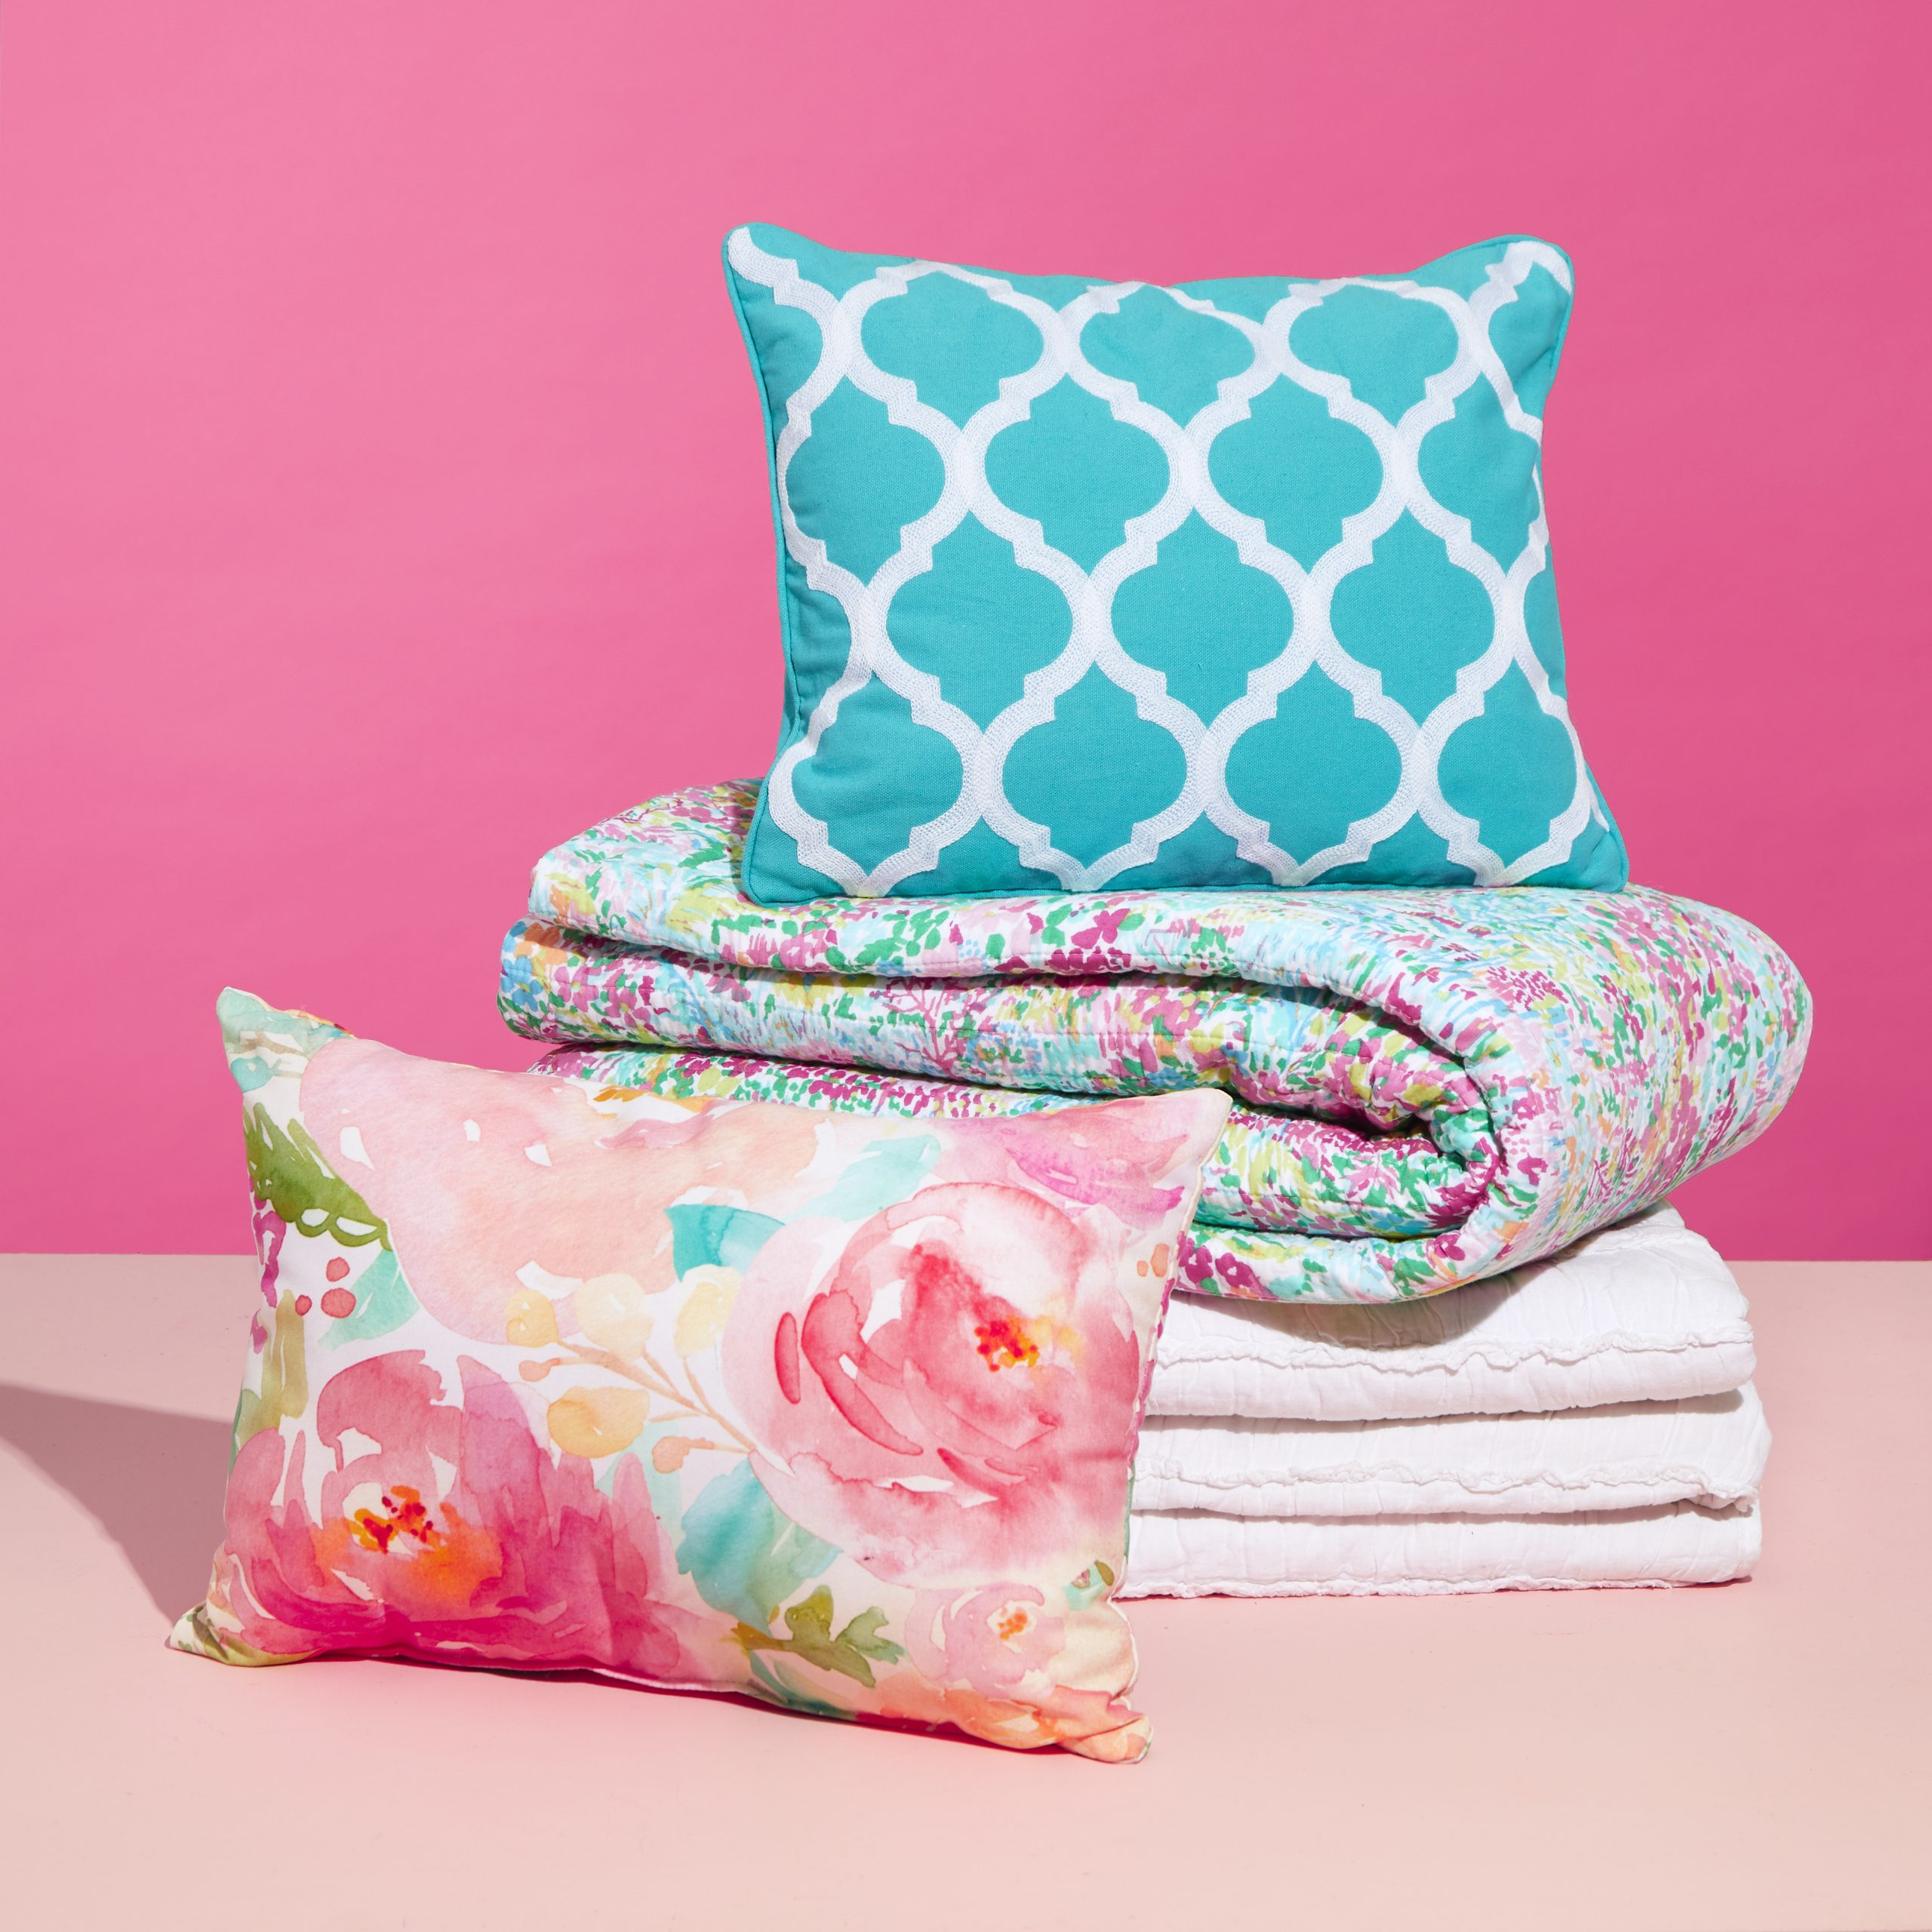 Floral and Turquoise Bedding